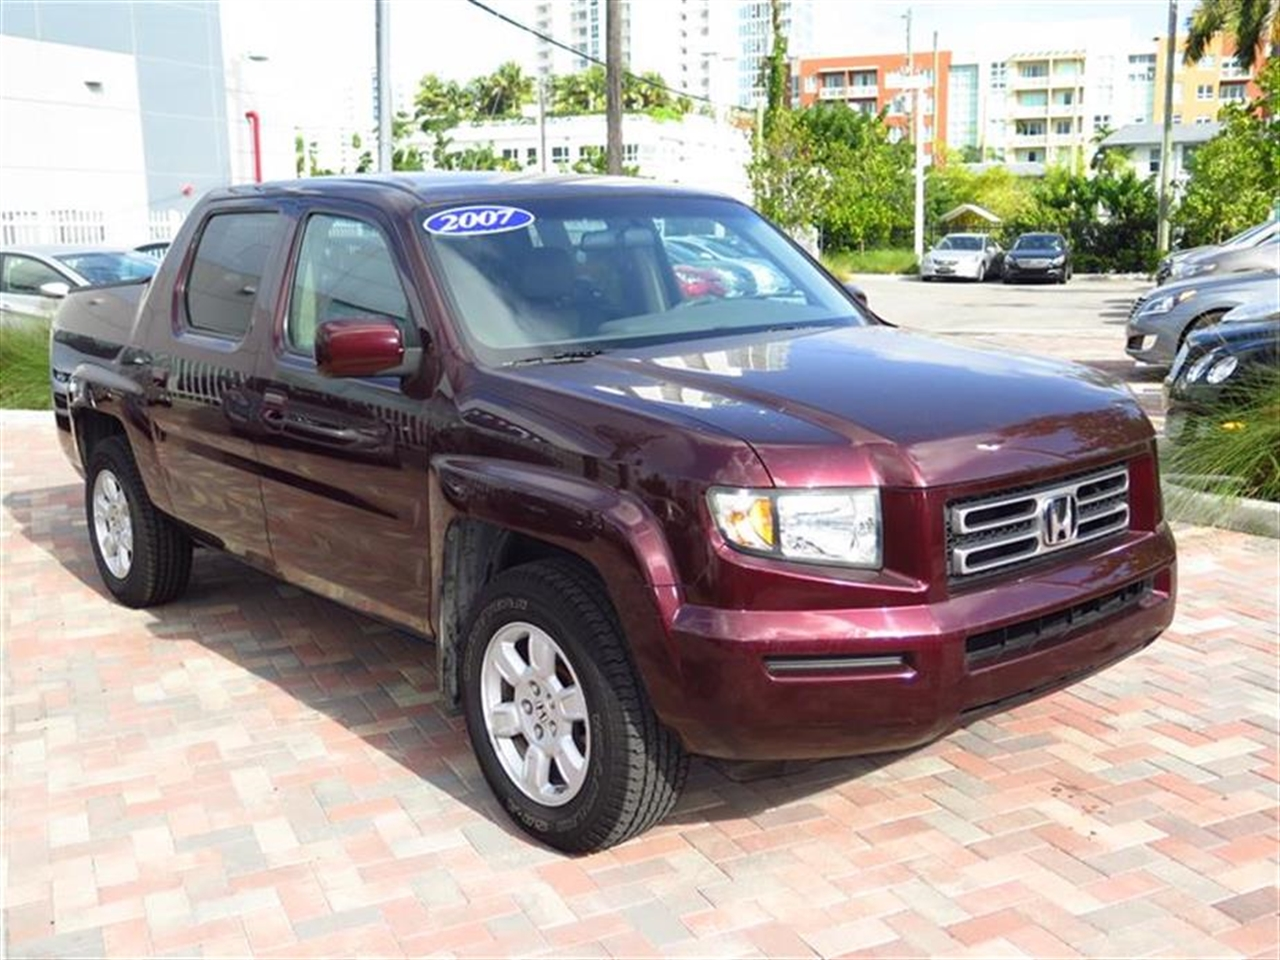 2007 HOND RIDGE 4WD Crew Cab RTS 60742 miles 2 front1 rear 12V pwr outlets 6040 split fold